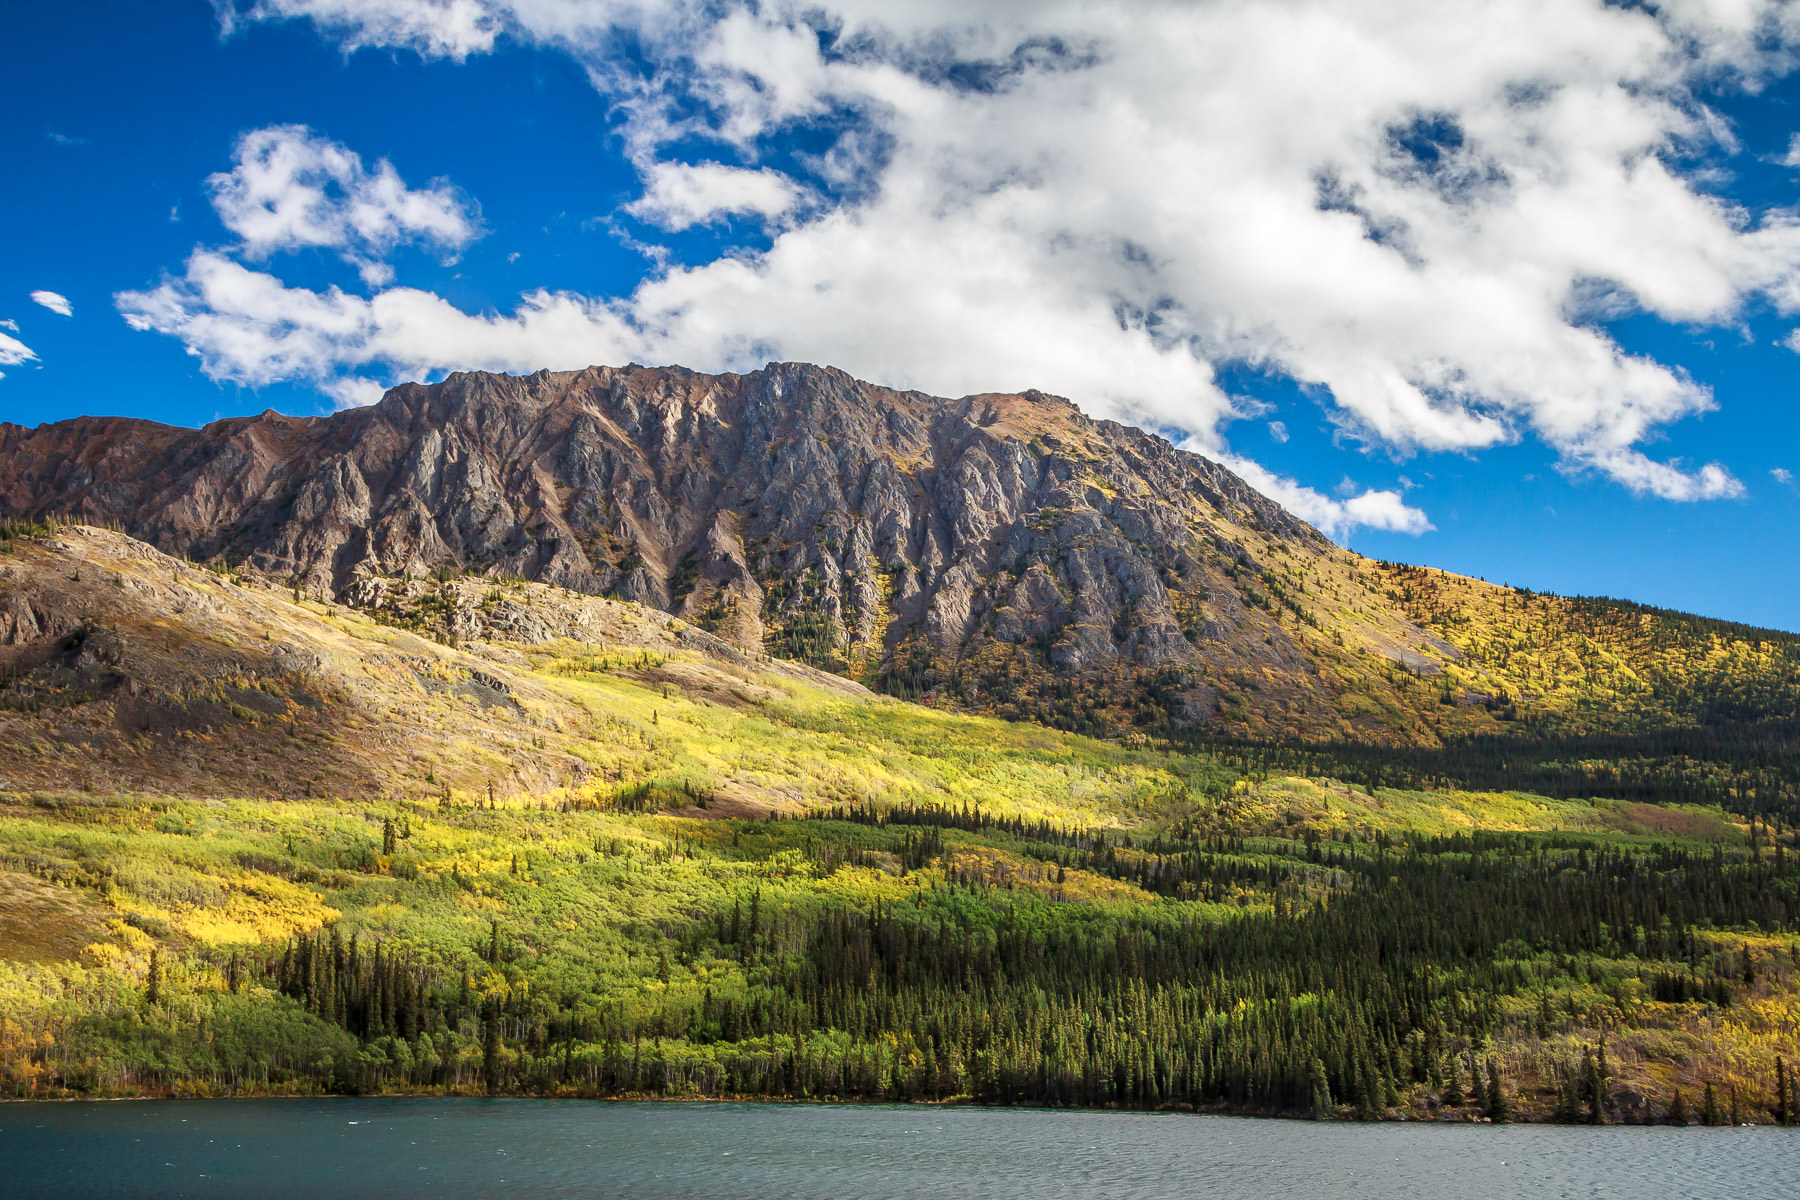 A mountain rises on the far shore of Tagish Lake, British Columbia along the Klondike Highway.